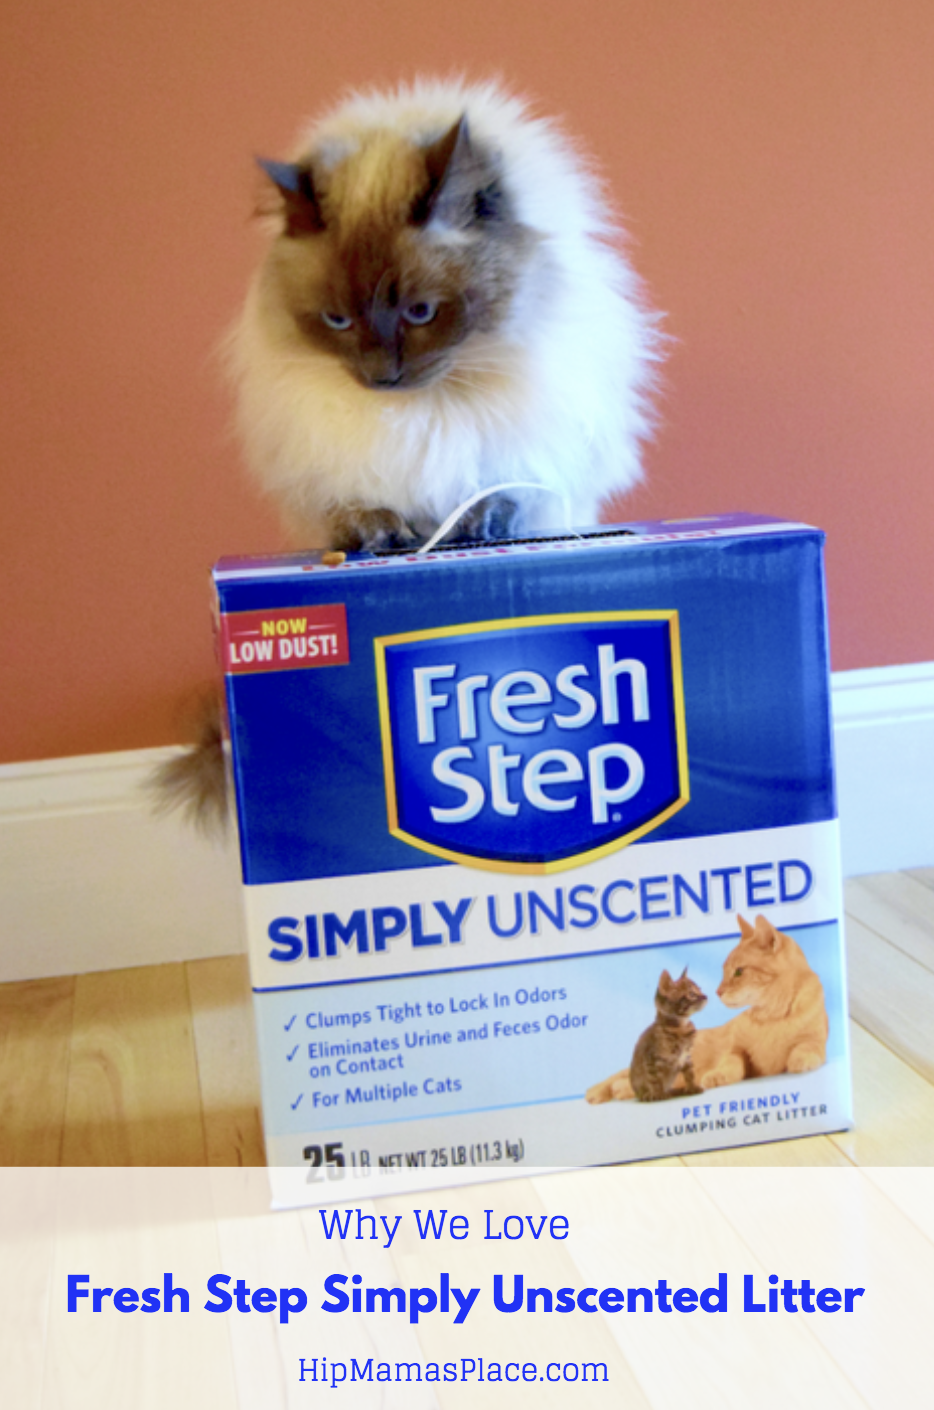 October 29 is National Cat Day and we are celebrating it over @ HipMamasPlace.com! For Oscar's cat litter, we love Fresh Step Simply Unscented Litter!